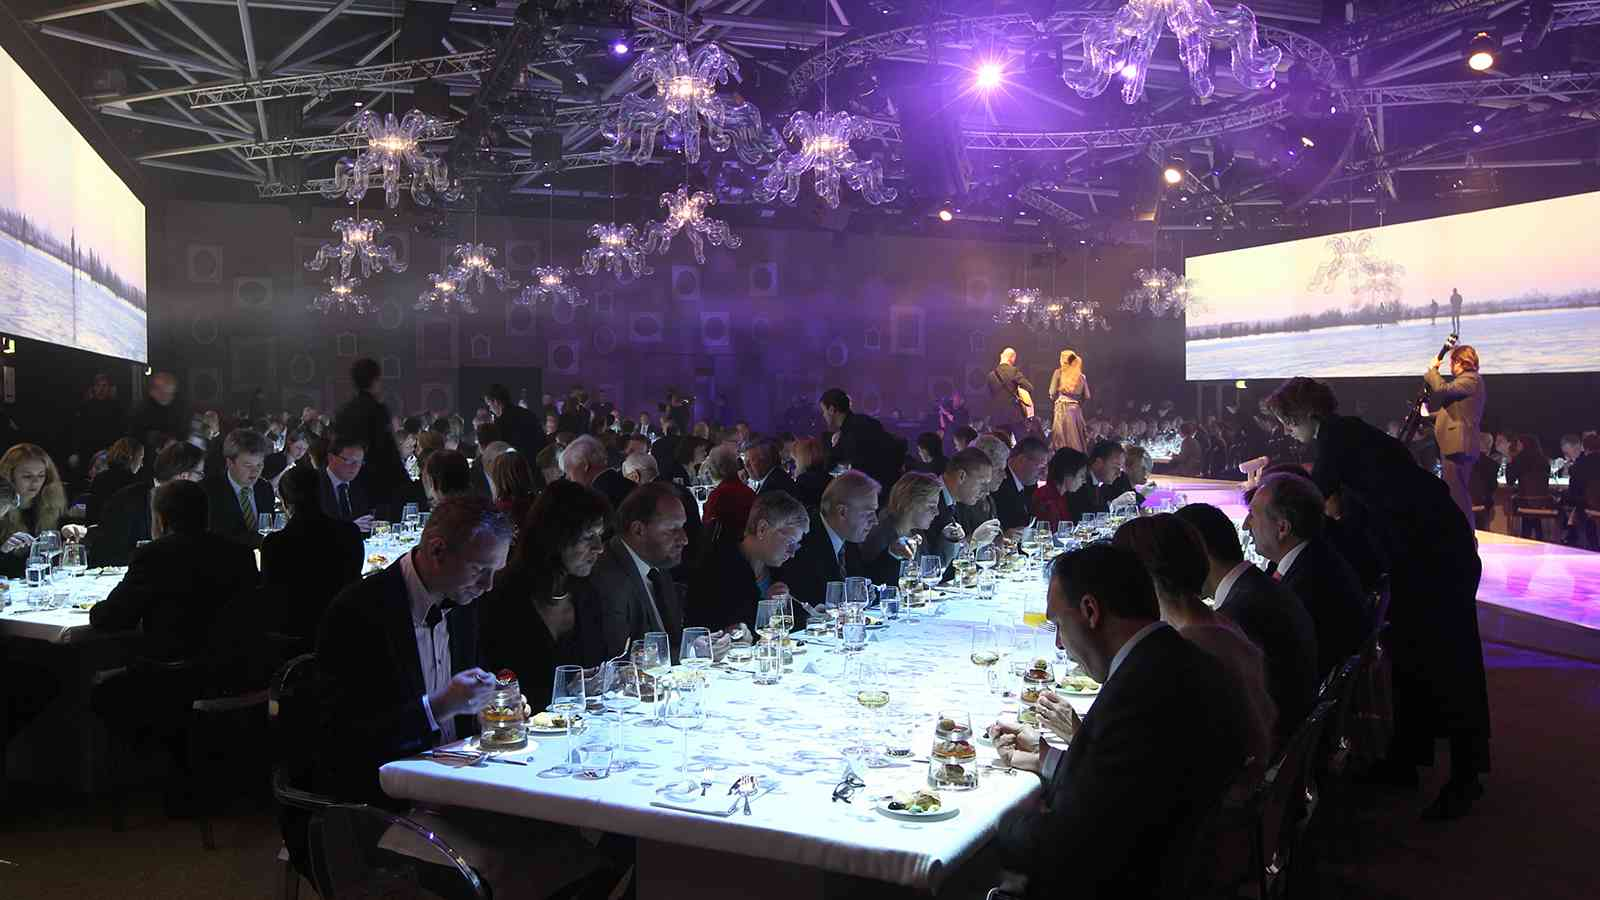 Galad Dinner Event | Moody visuals projection on dinner tables at Gala Dinner Event